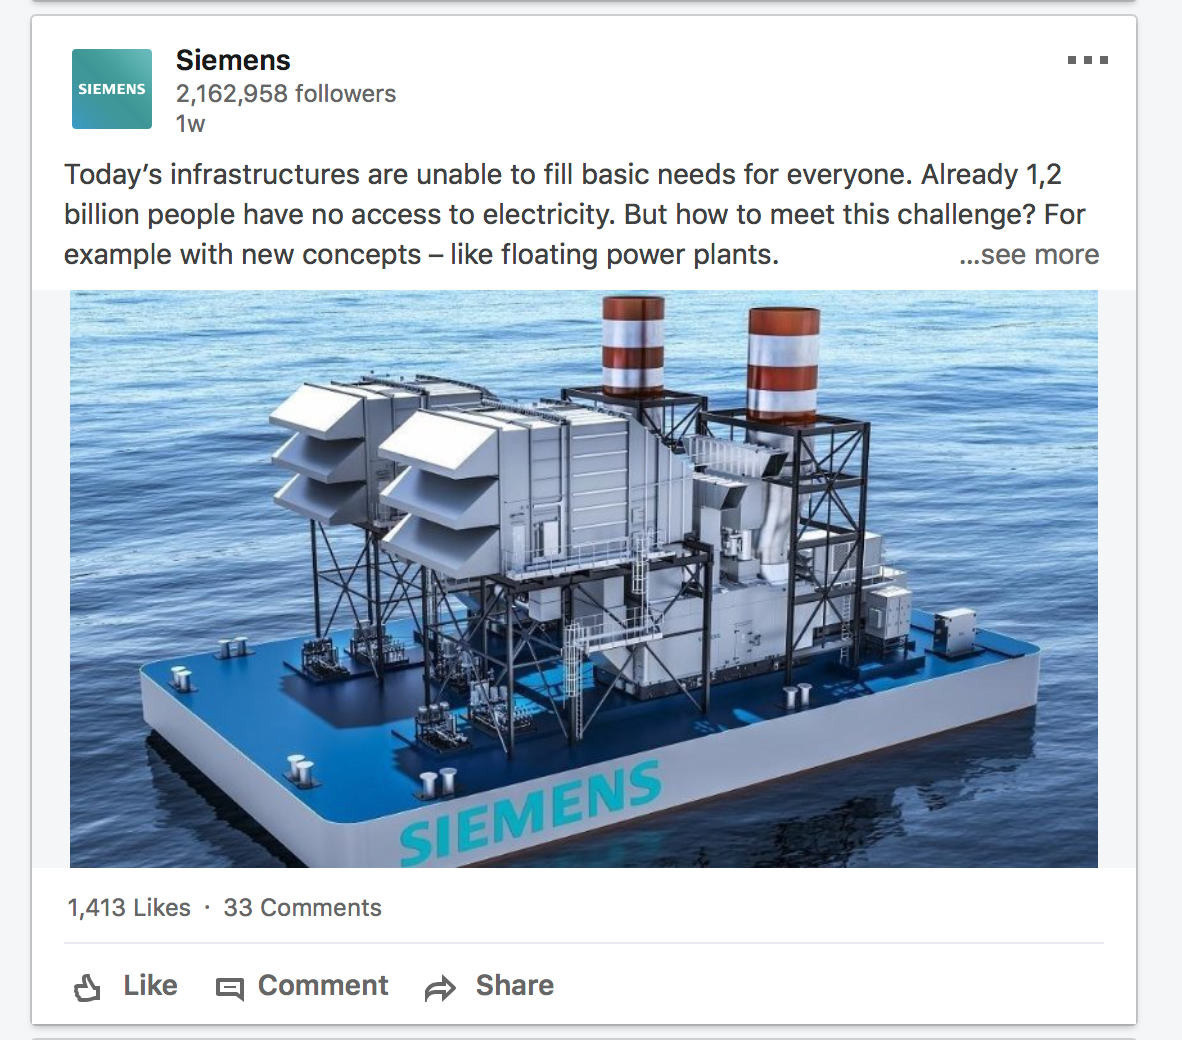 siemens blog post 2